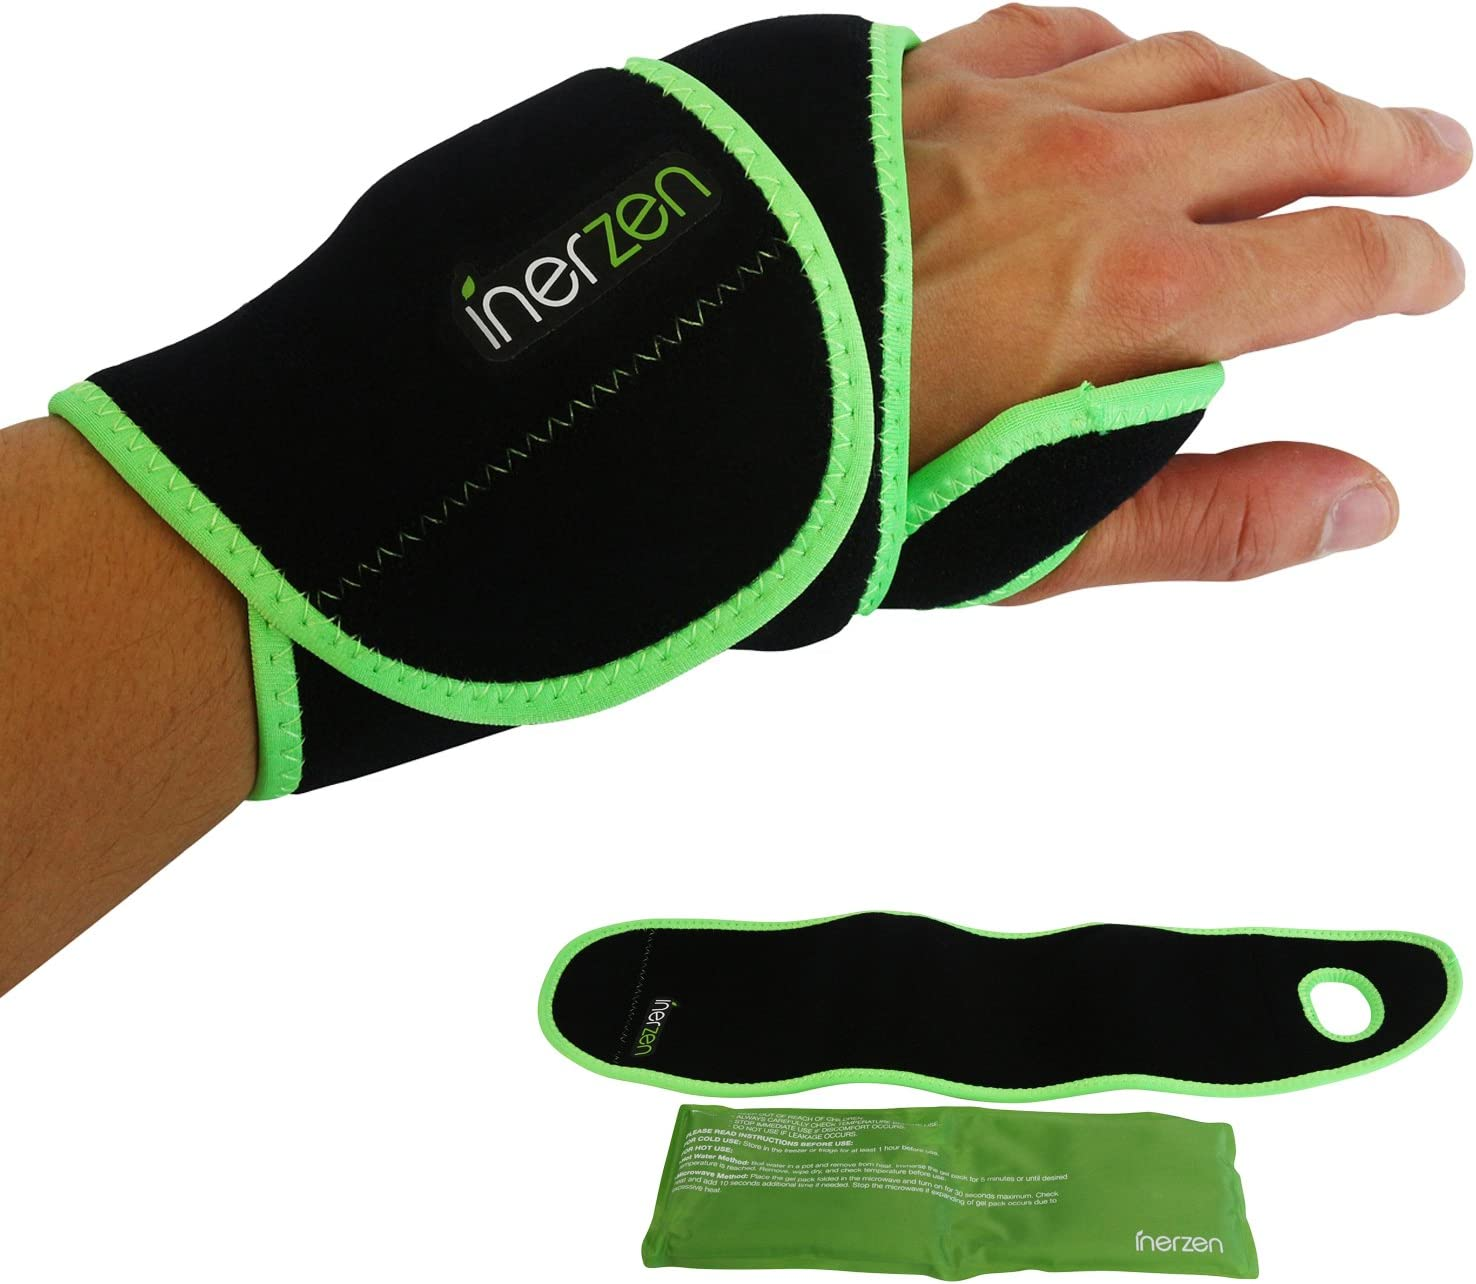 Inerzen Wrist Support Hot and Cold Gel Therapy Wrap - Includes Hot or Cold Gel Pack for Pain Relief - Microwavable, Freezable, Reusable (One Size Fits All)